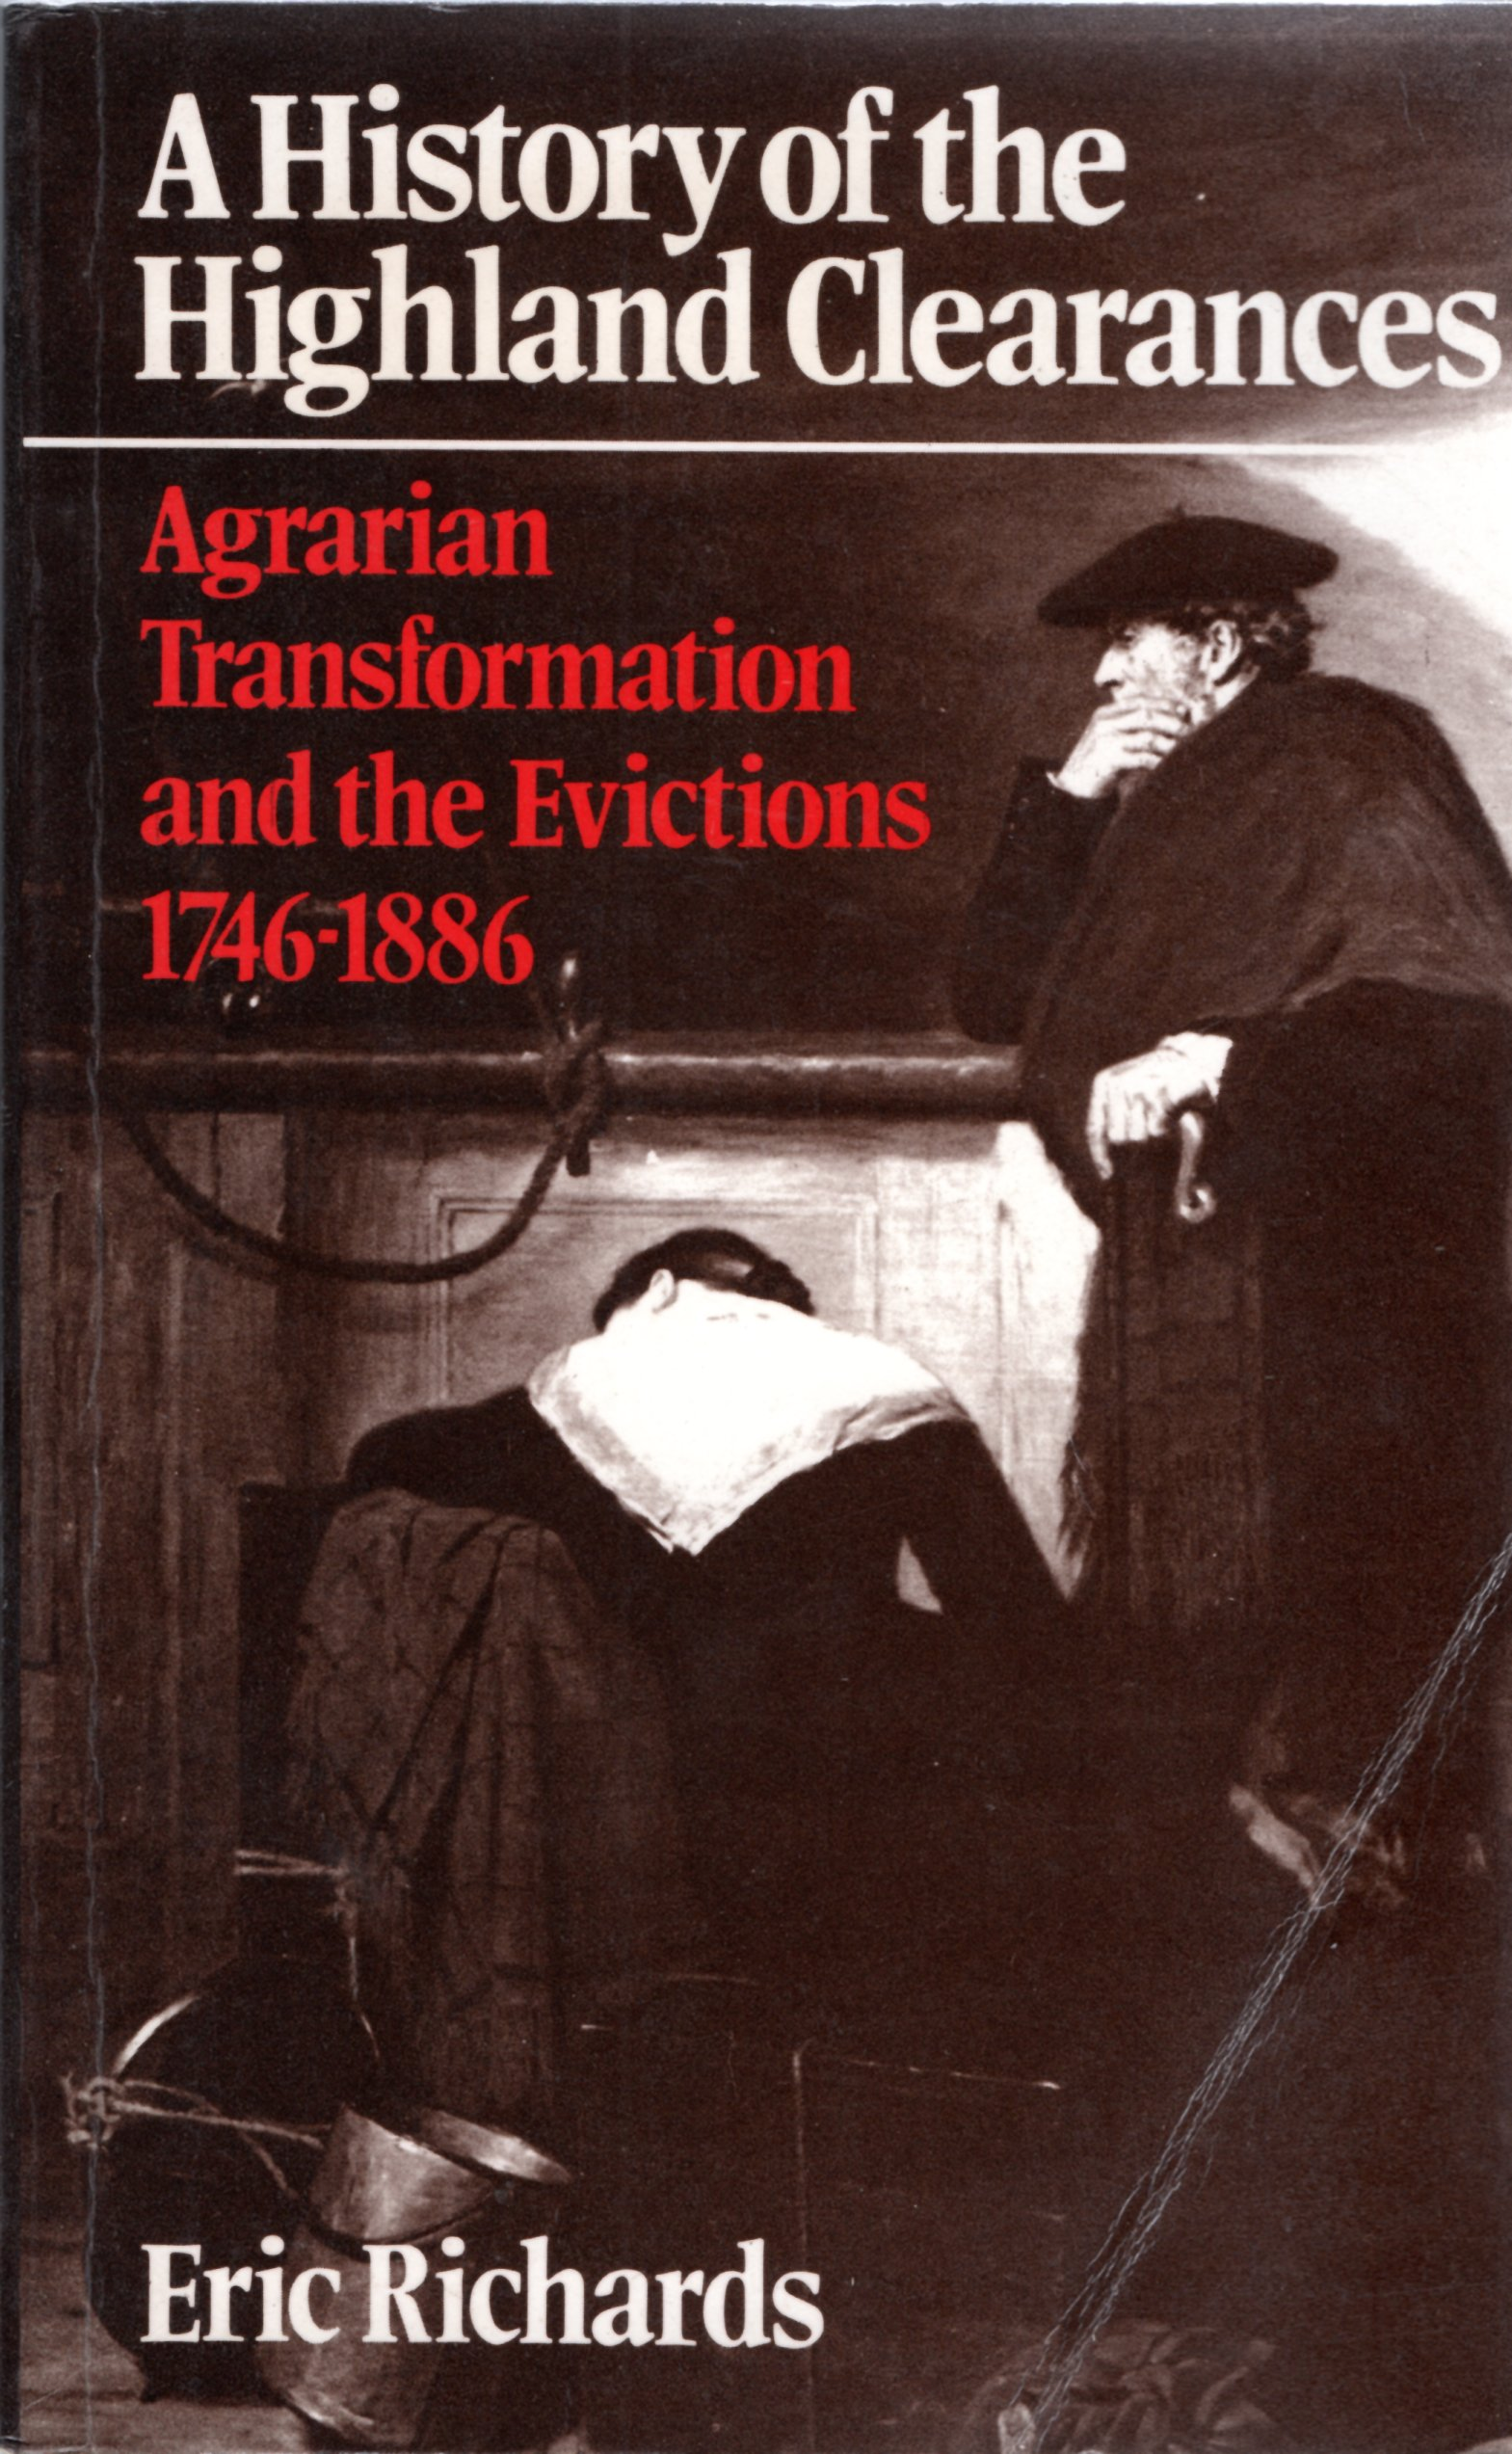 Image for The History of the Highland Clearances: Agrarian Transformation and the Evictions 1746-1886